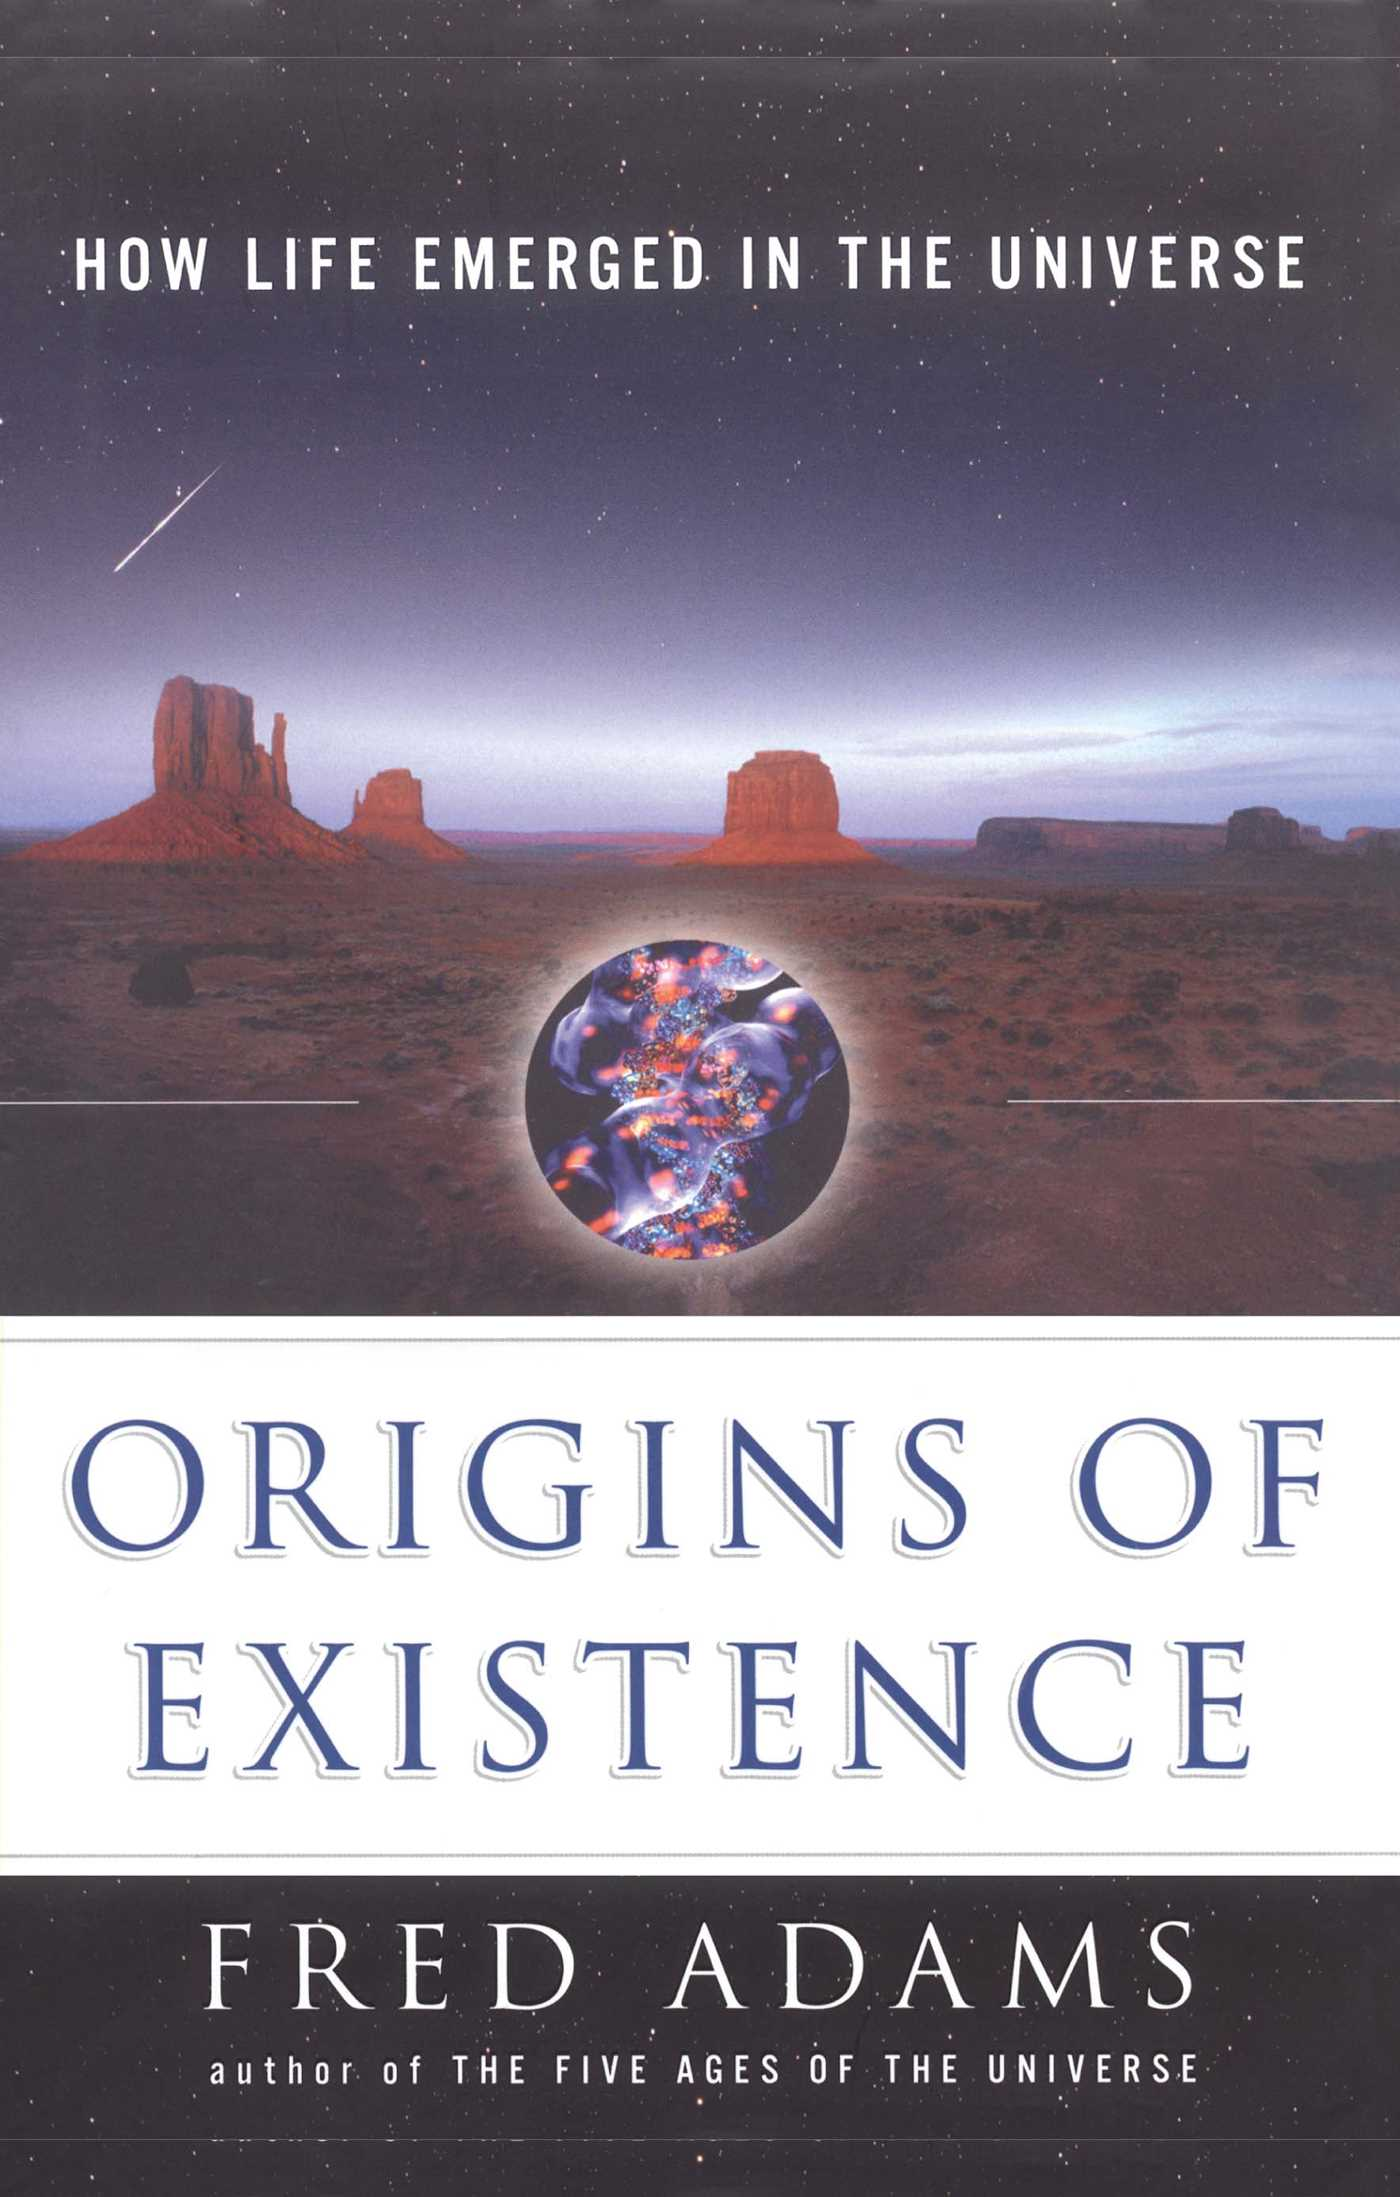 Origins-of-existence-9781439138205_hr